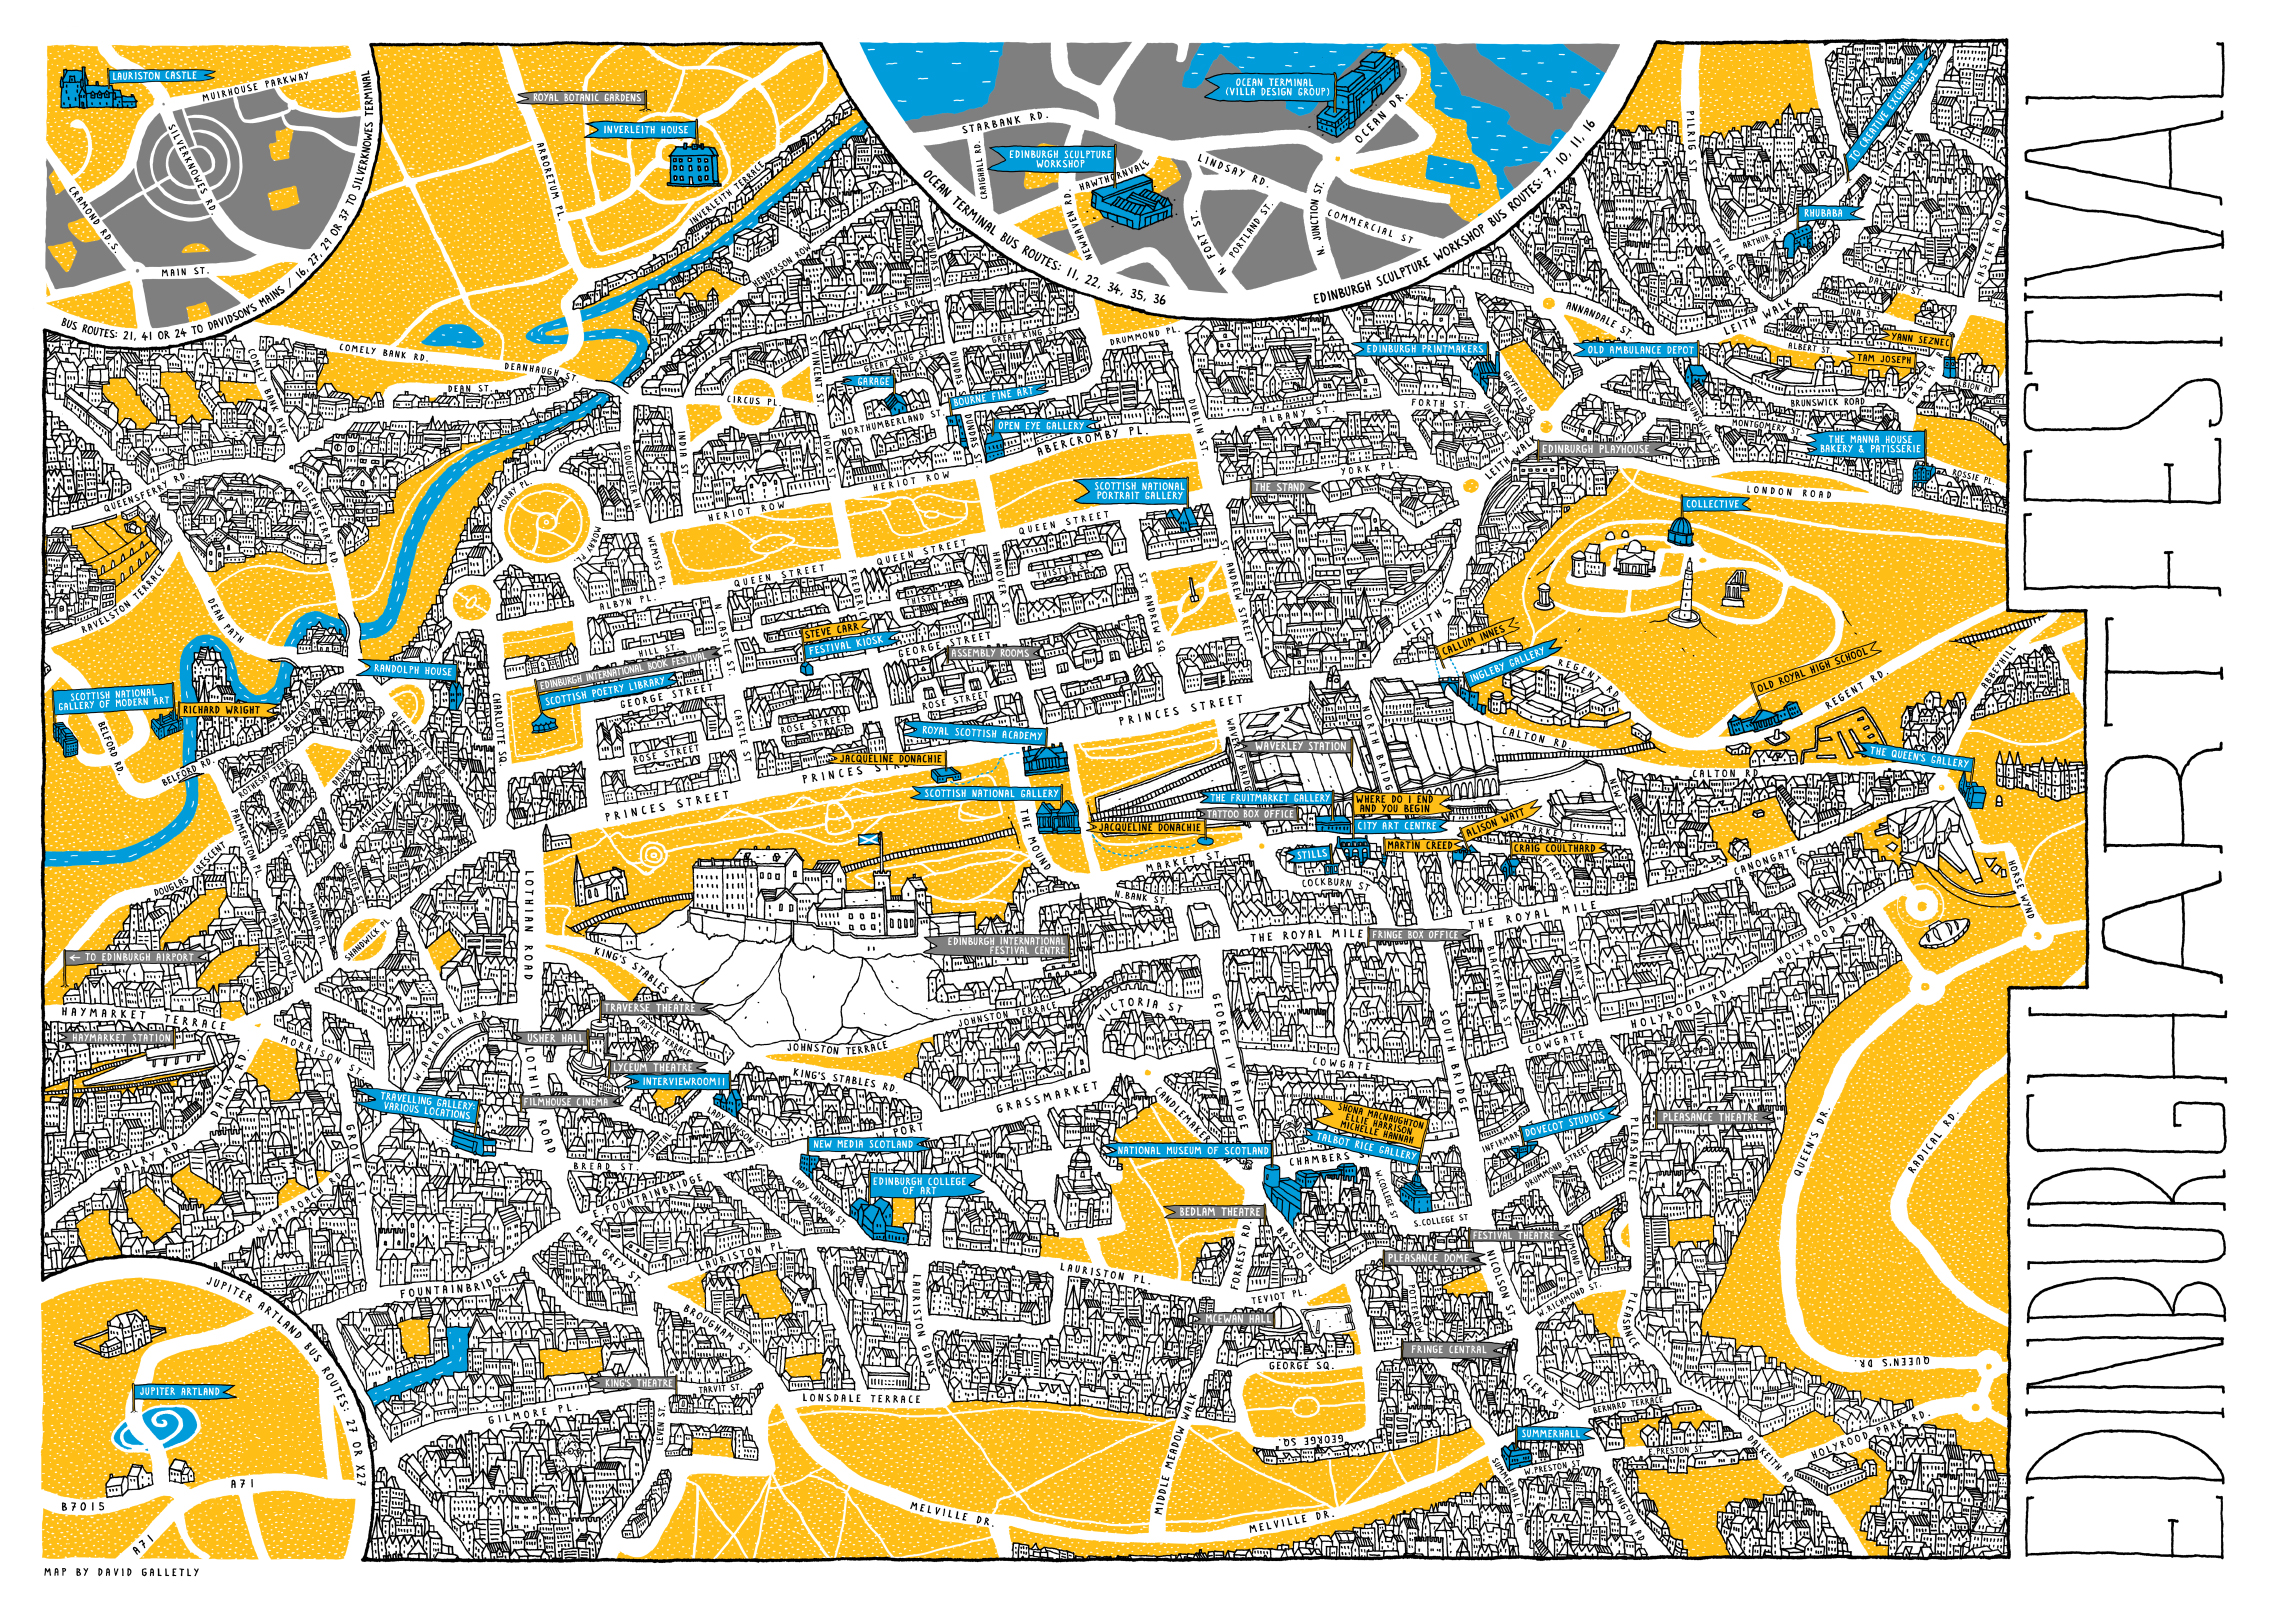 Edinburgh Fringe Map Relive the Music With These Gorgeous Festival Maps | Guidebook